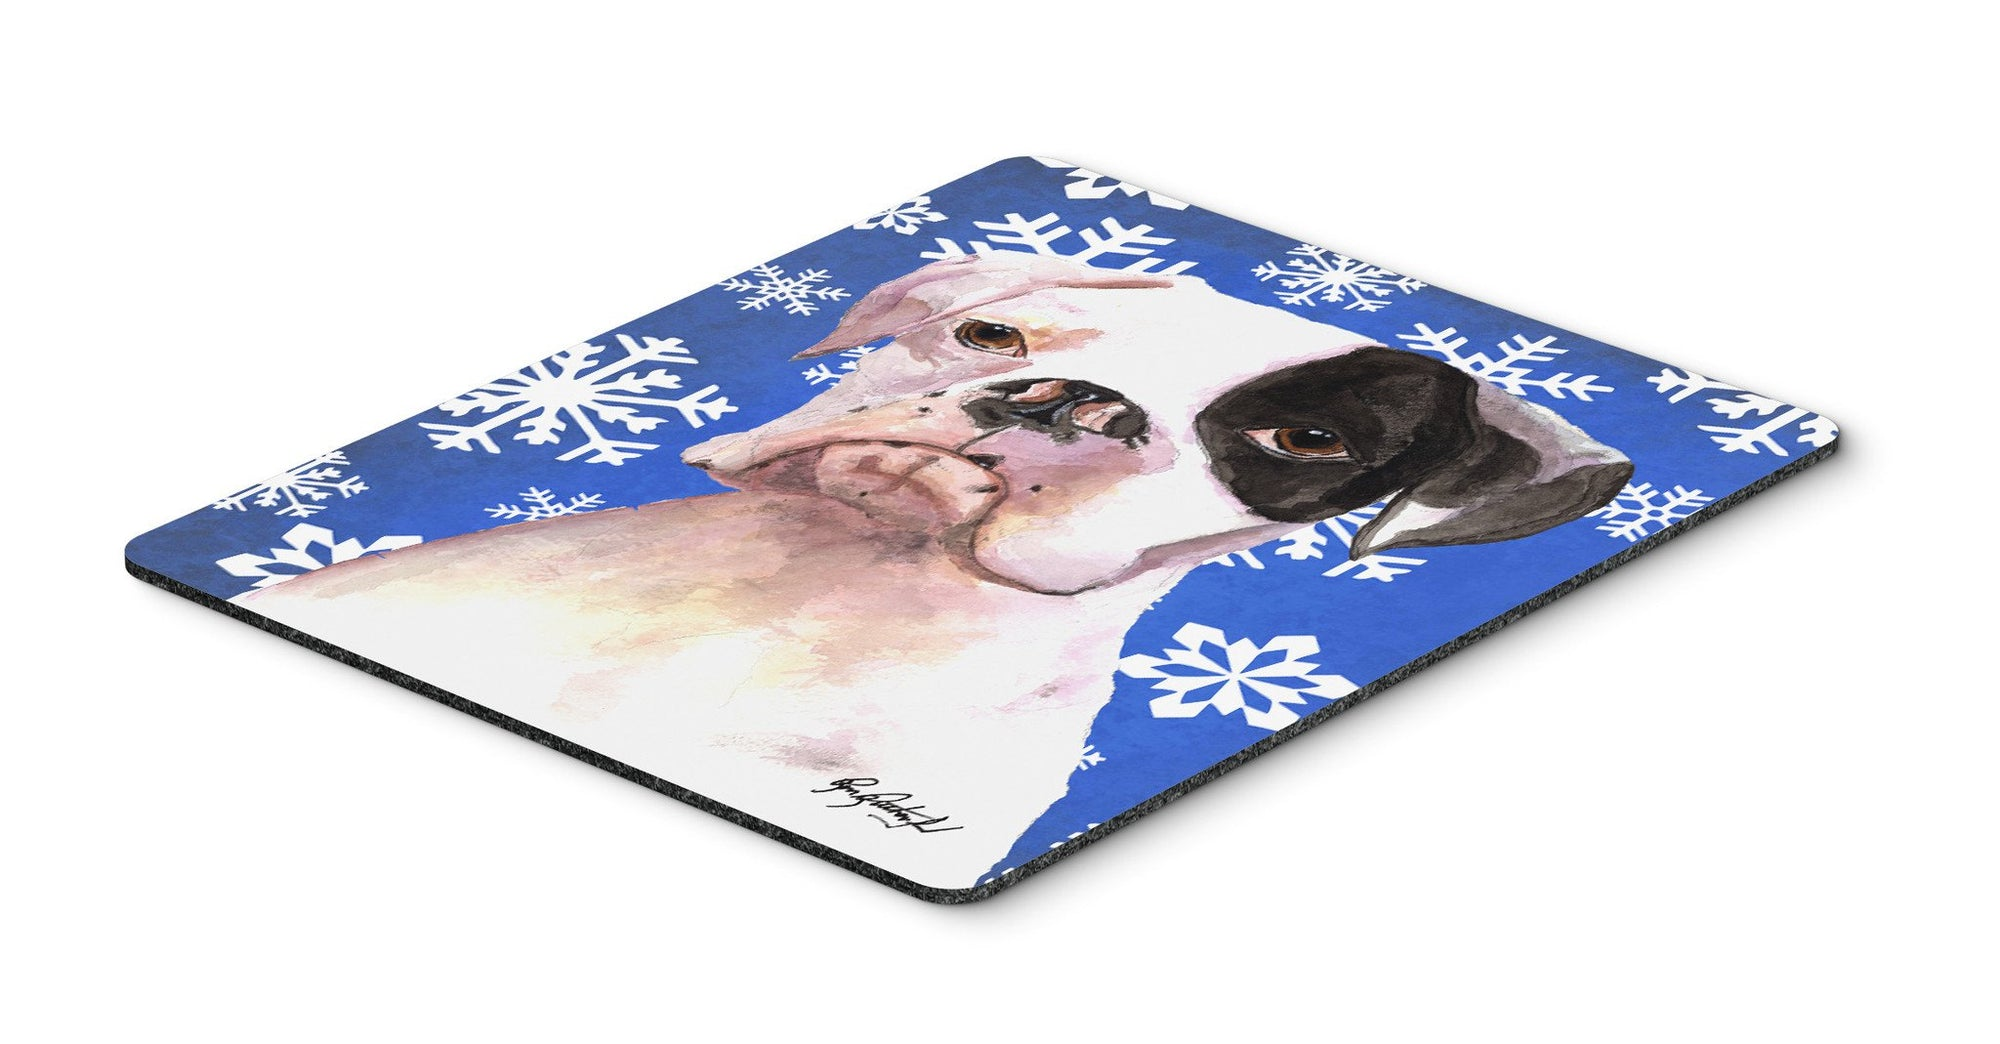 Cooper Winter Snowflakes Boxer Mouse Pad, Hot Pad or Trivet - the-store.com